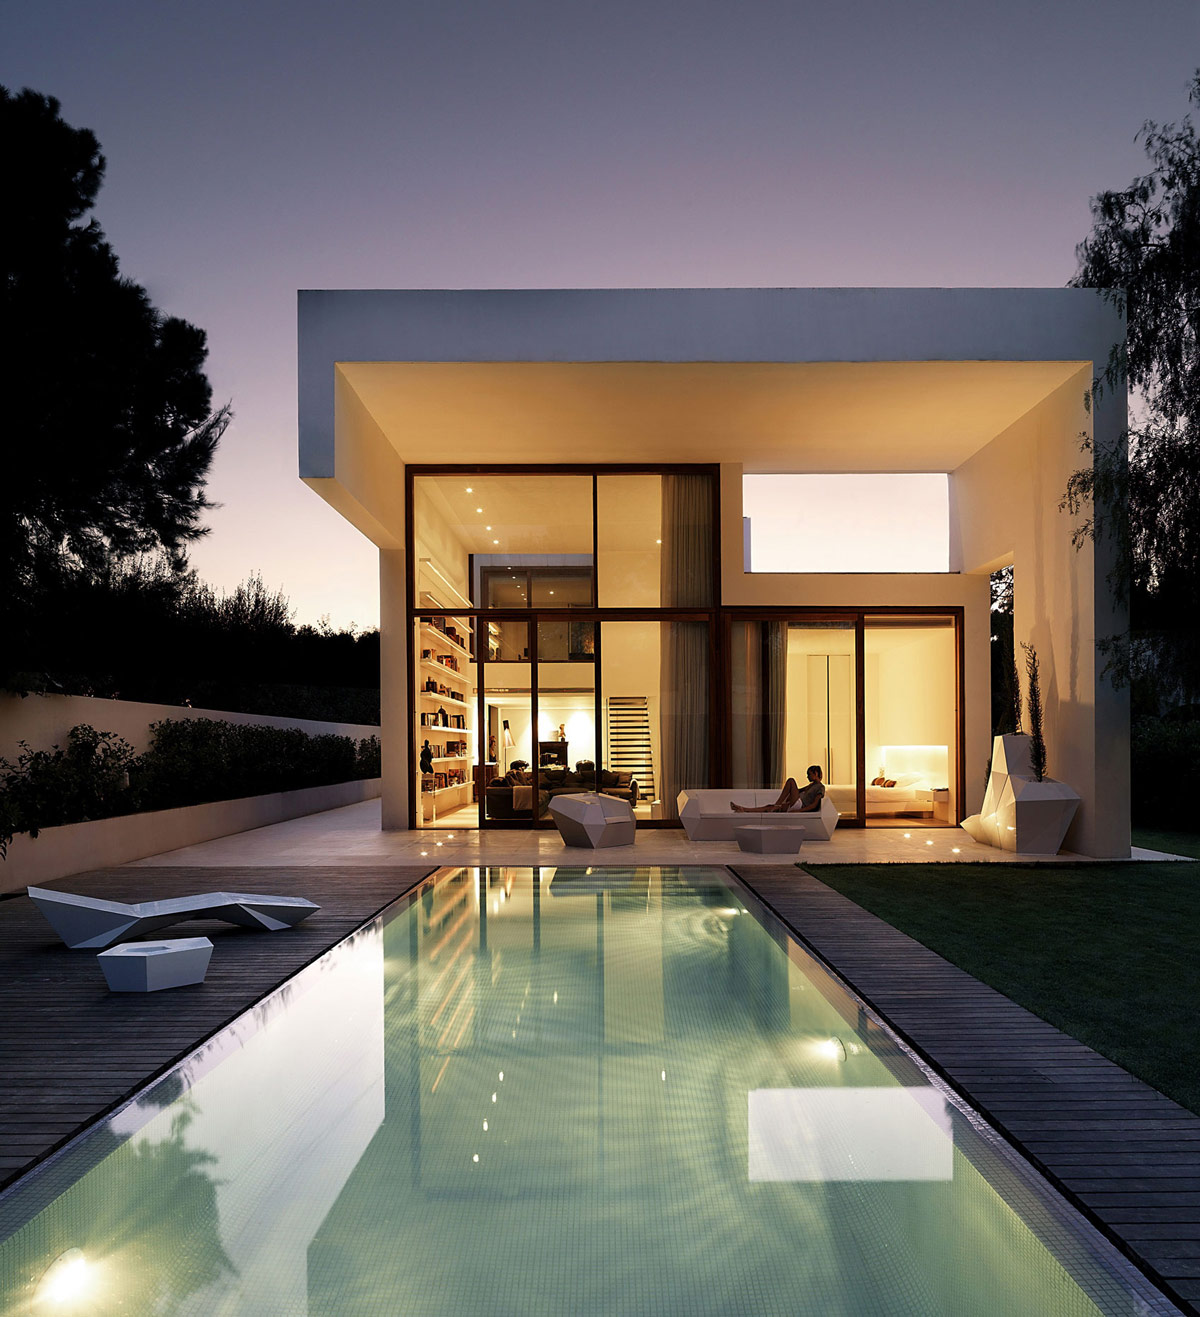 Pool, Lighting, Evening, Outdoor Furniture, Contemporary Home in Valencia, Spain